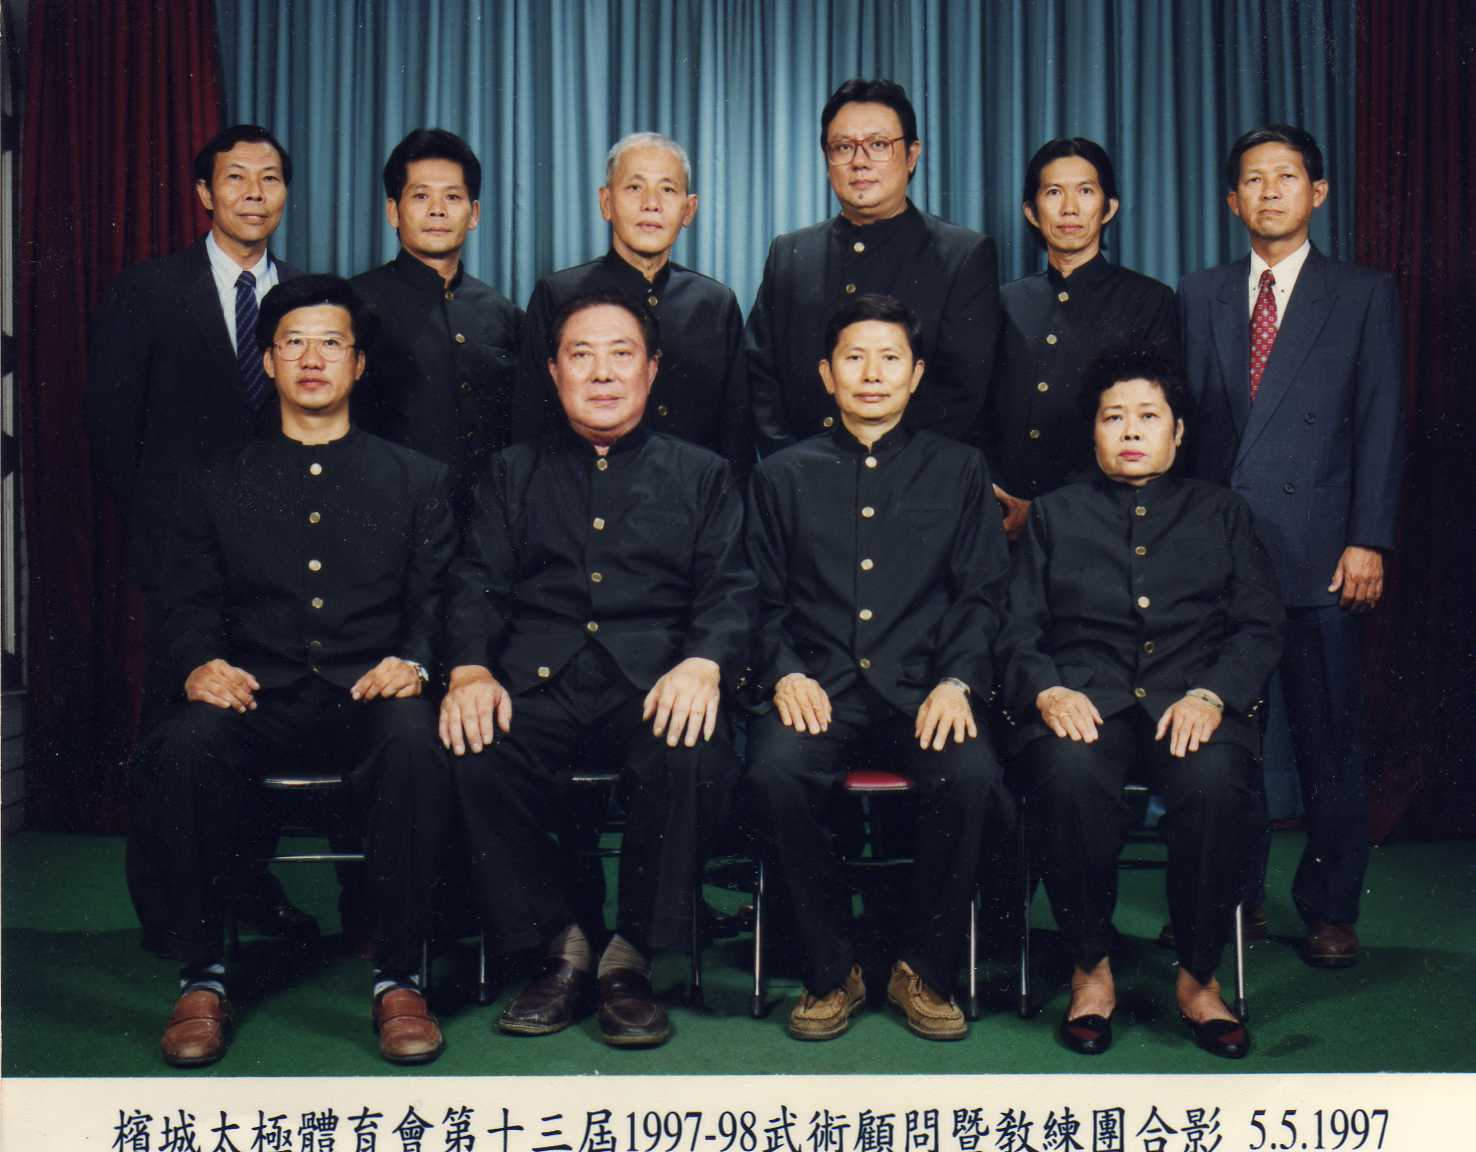 Board of instructors at the Taiji Association, Penang.